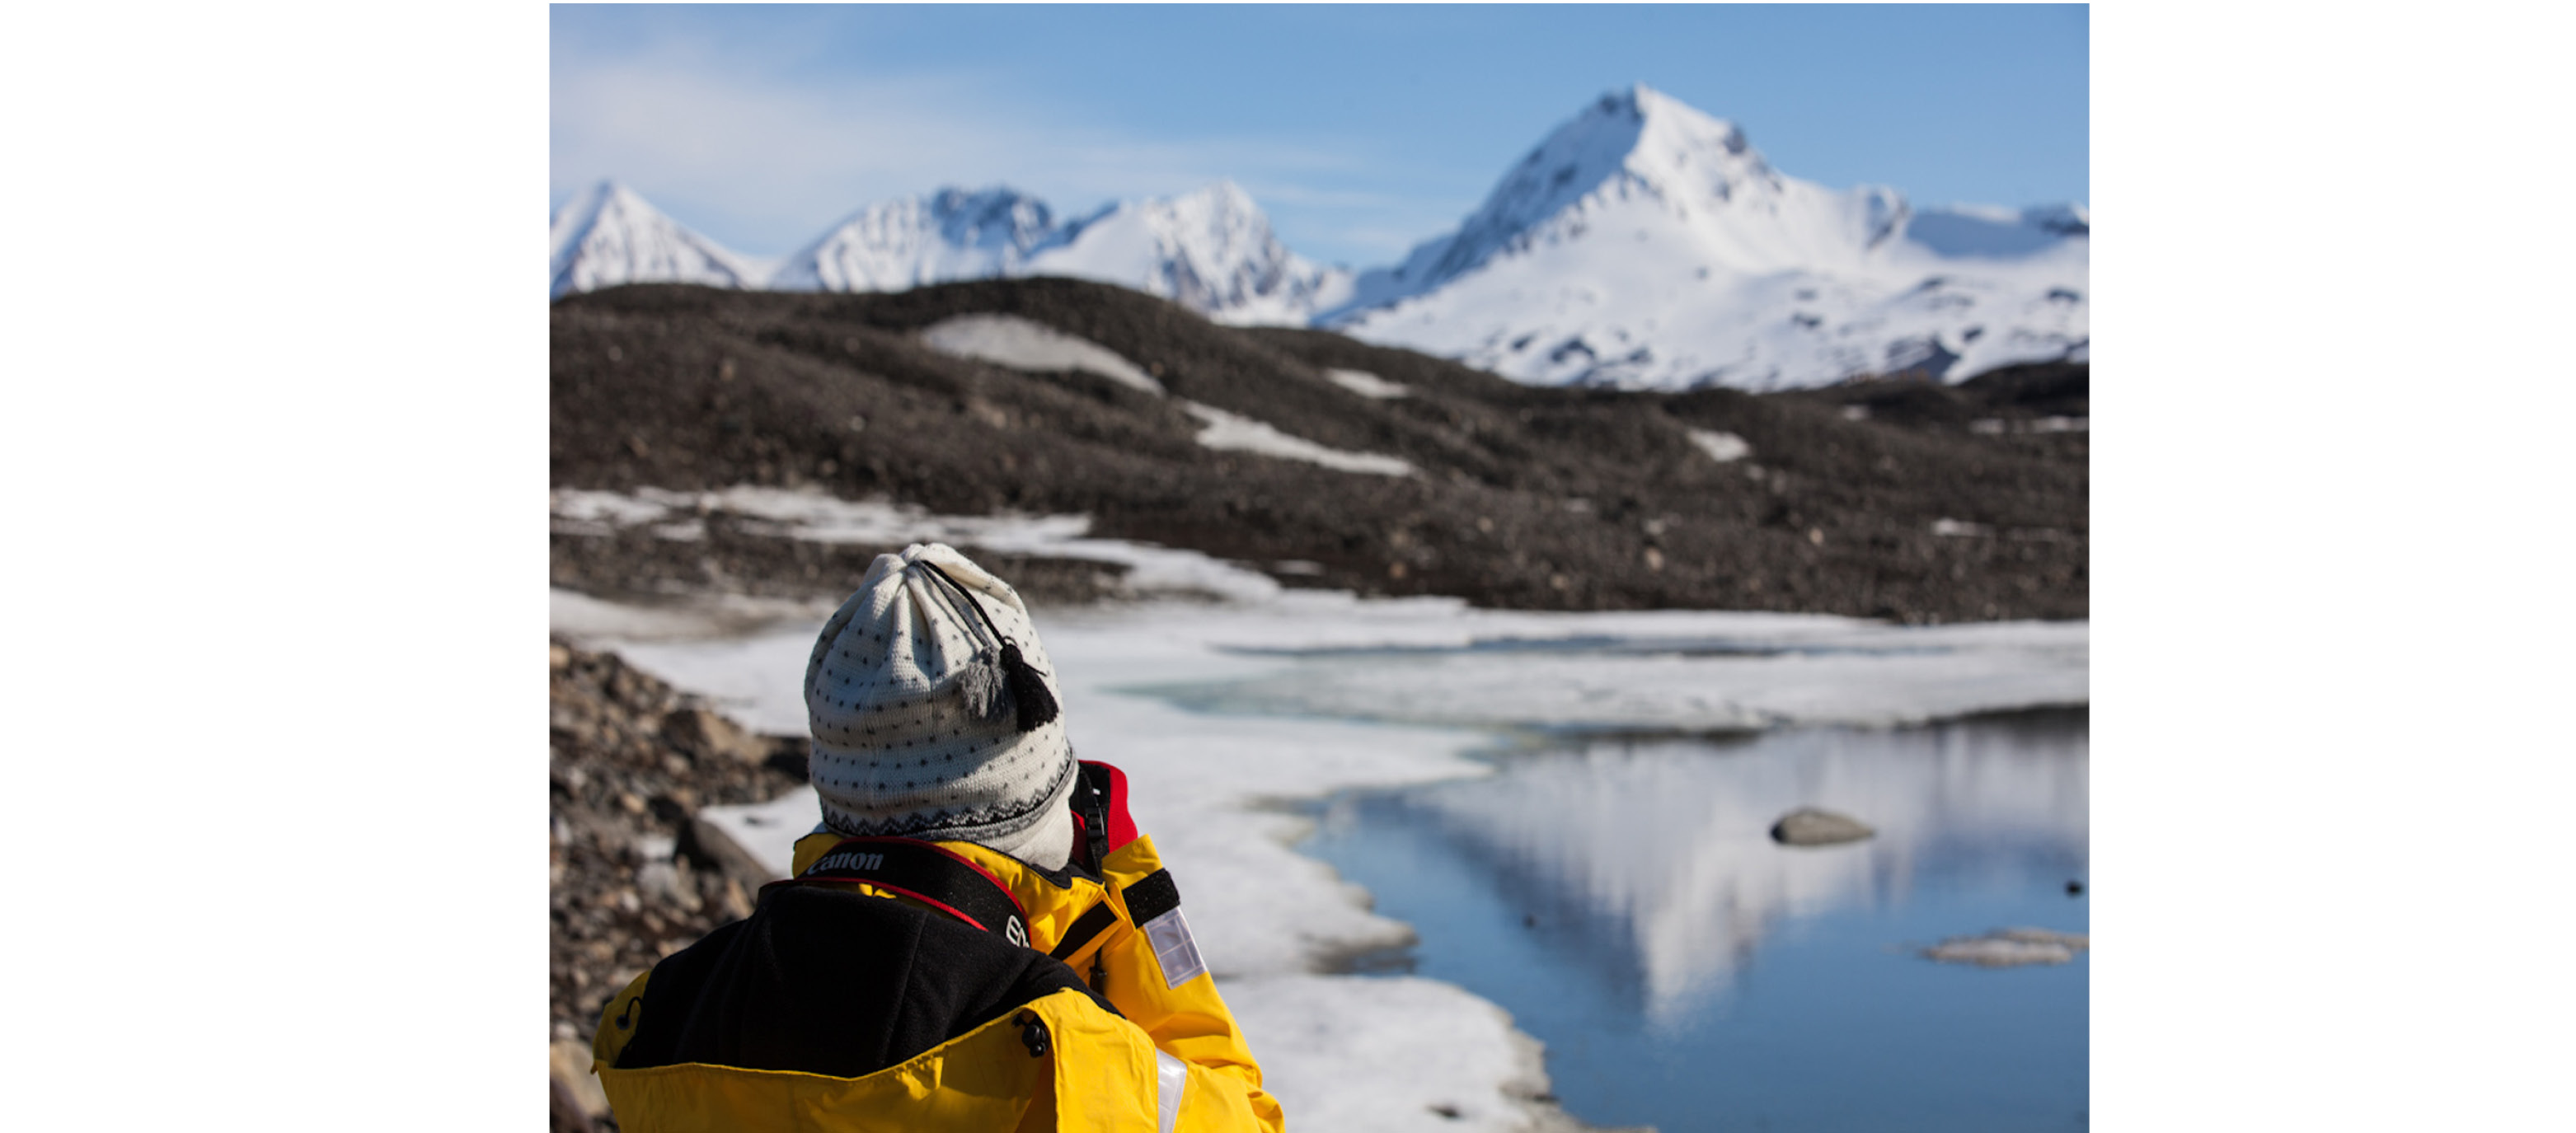 Heaven publicity expedition travel expert launches online polar gear shop heaven publicity for Travel expedition gear